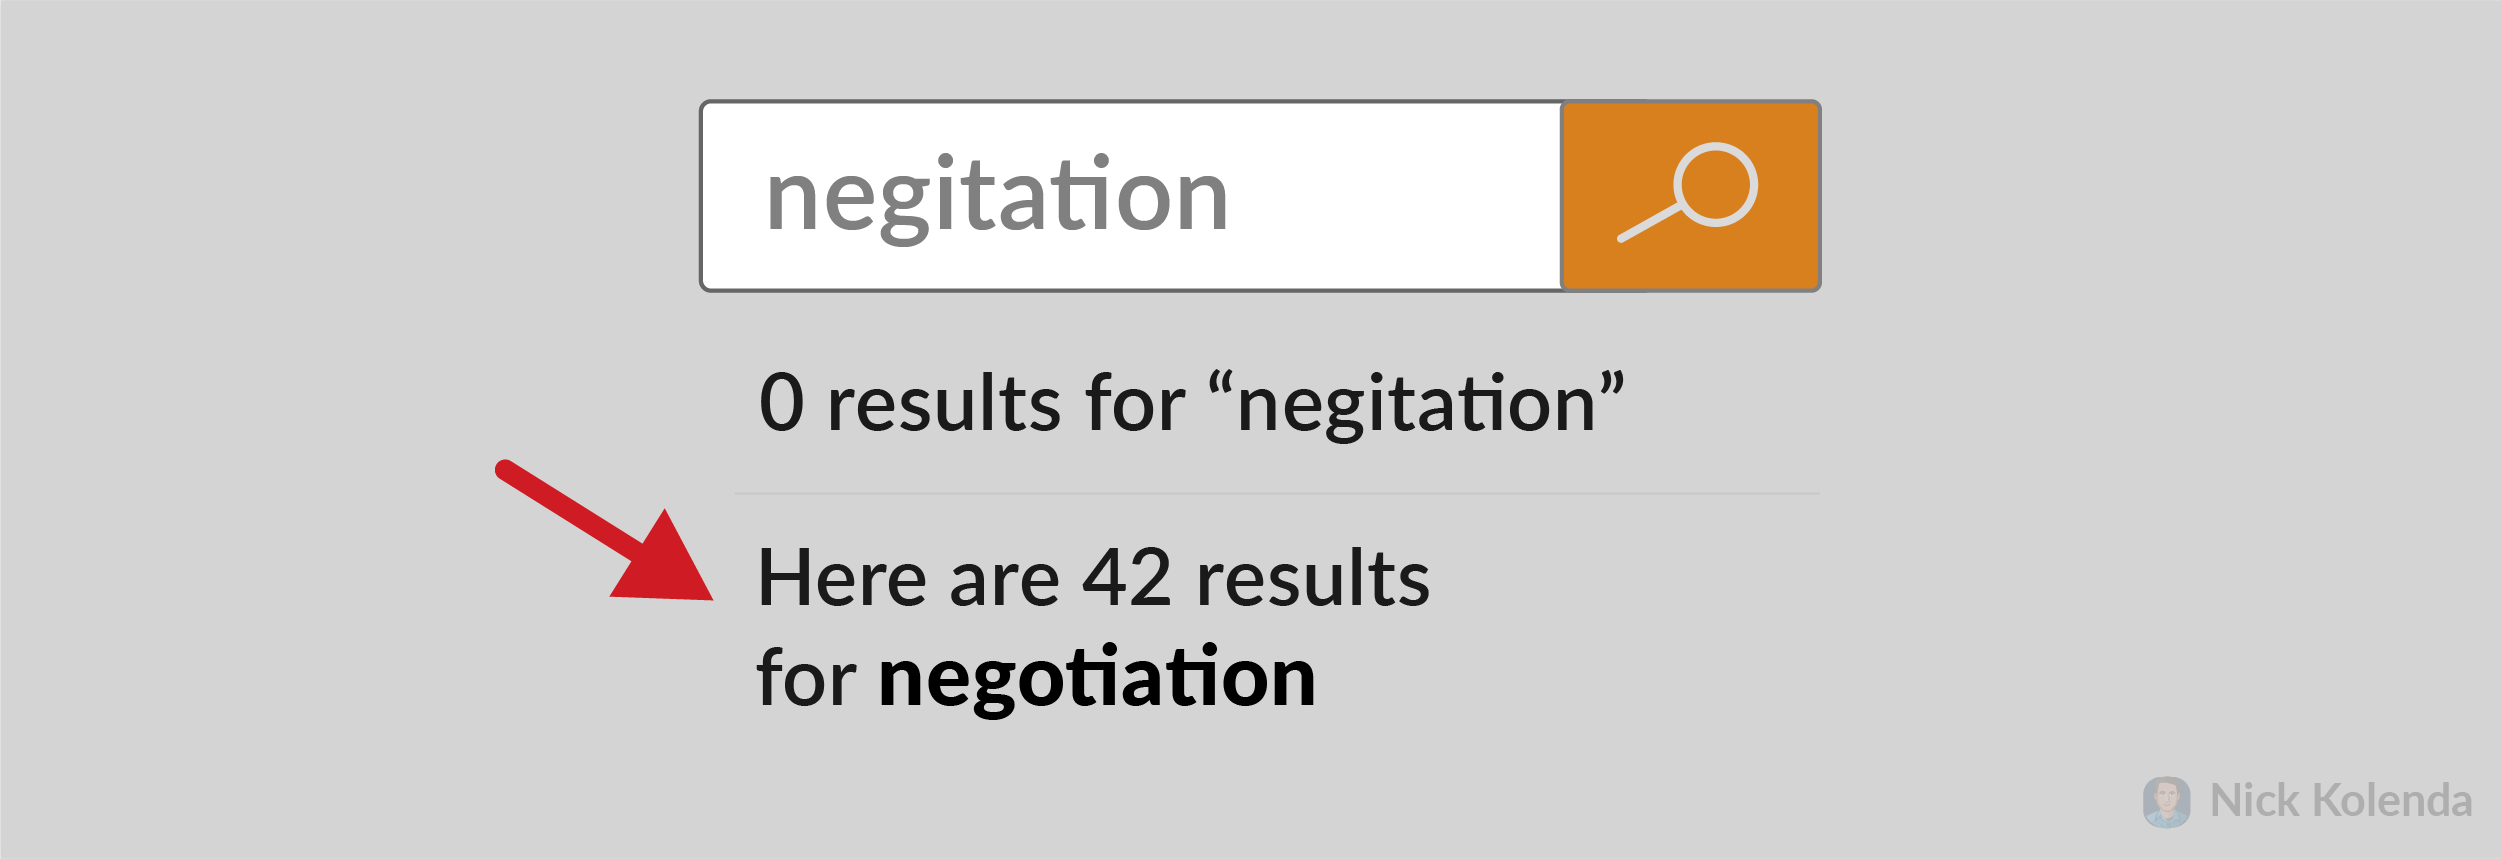 """User misspelling """"negotiation"""" but shown results for that term anyway"""